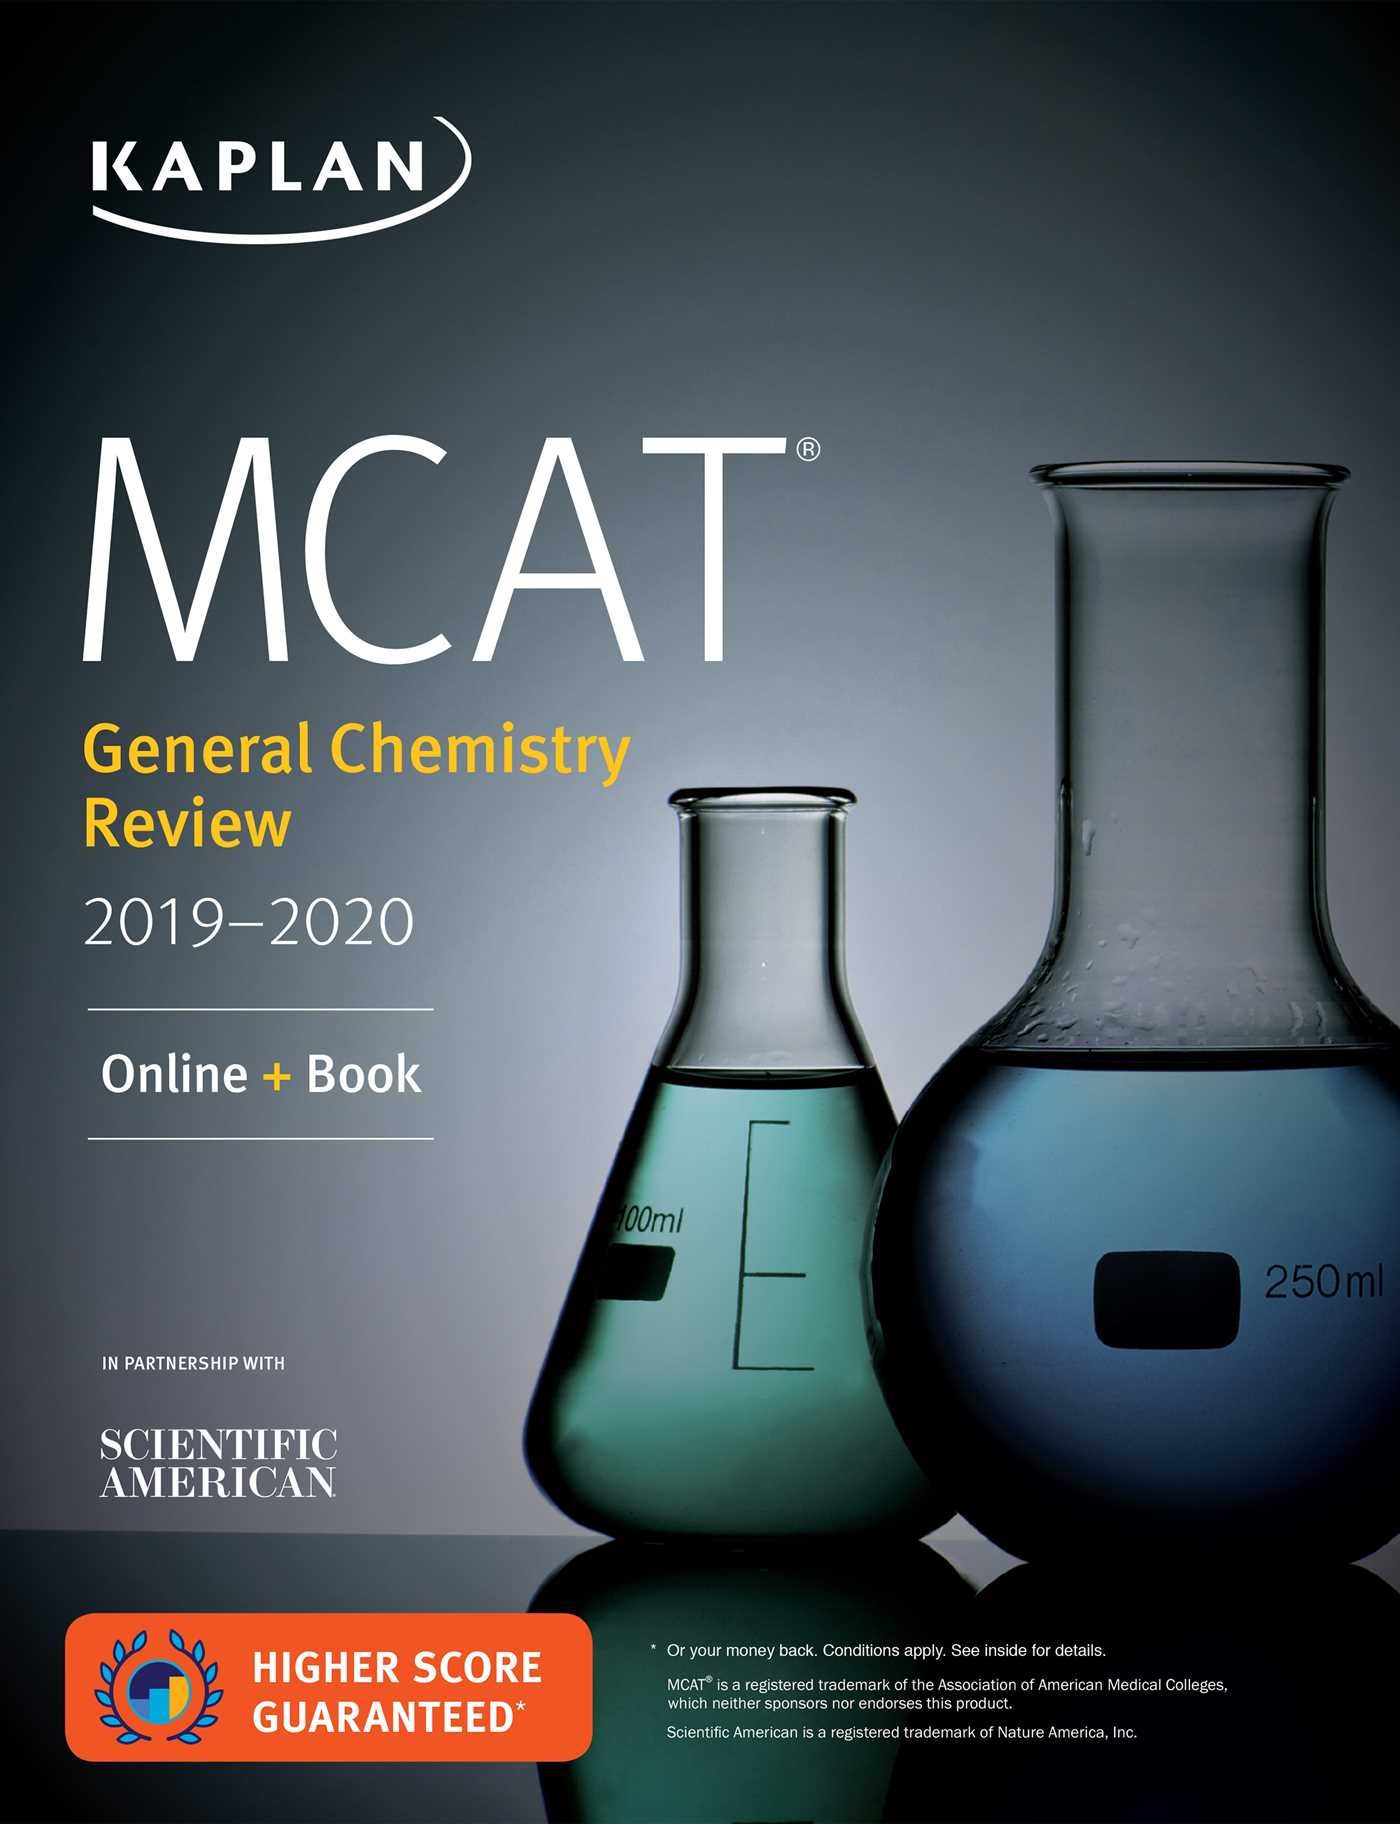 Book Cover Image (jpg): MCAT General Chemistry Review 2019-2020